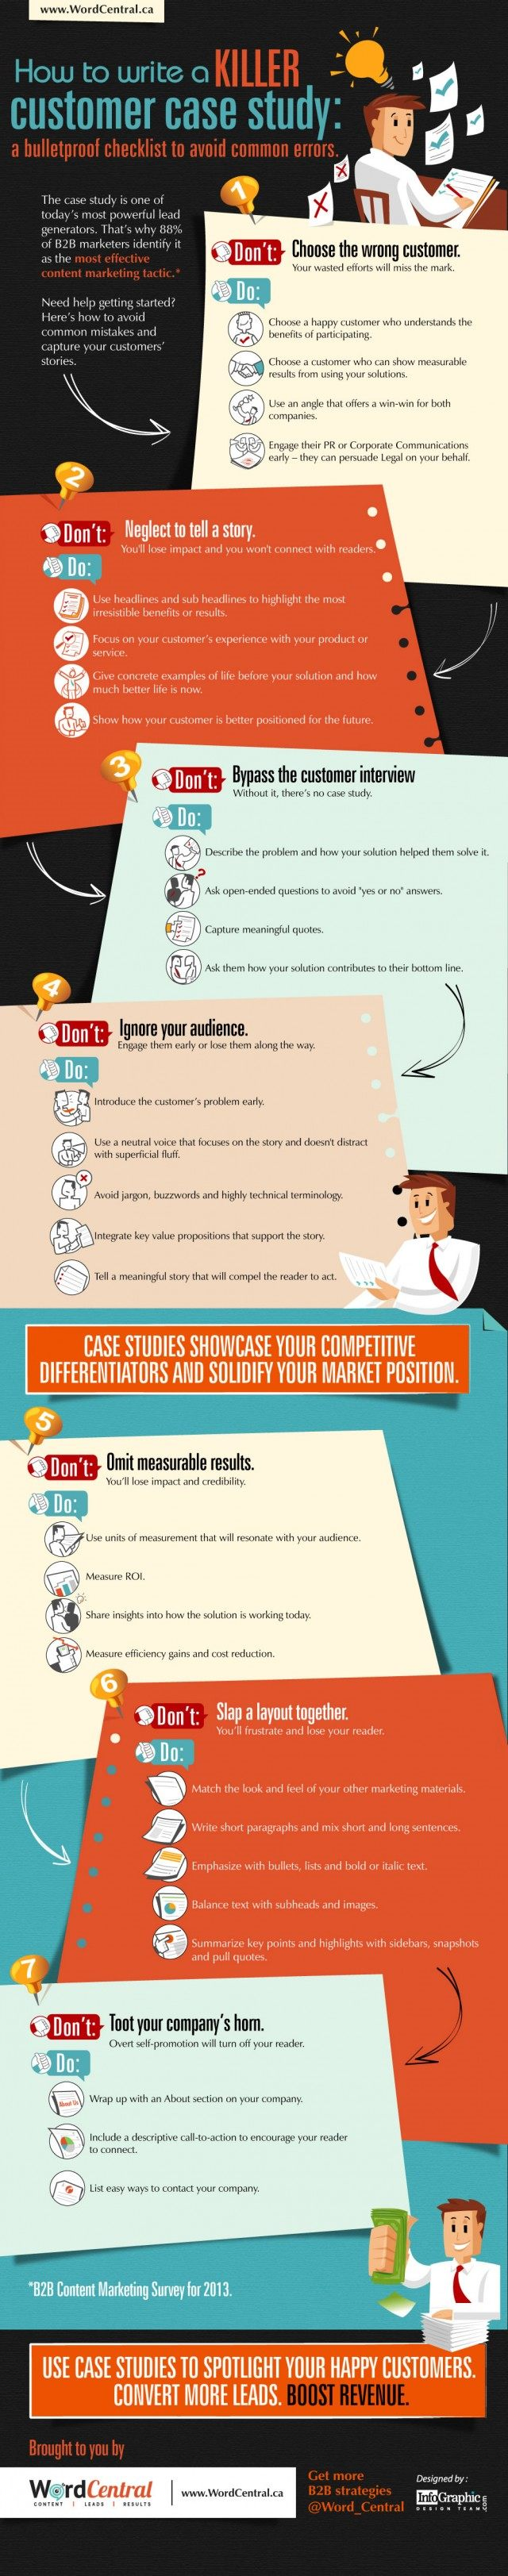 how to write a killer customer case study infographic